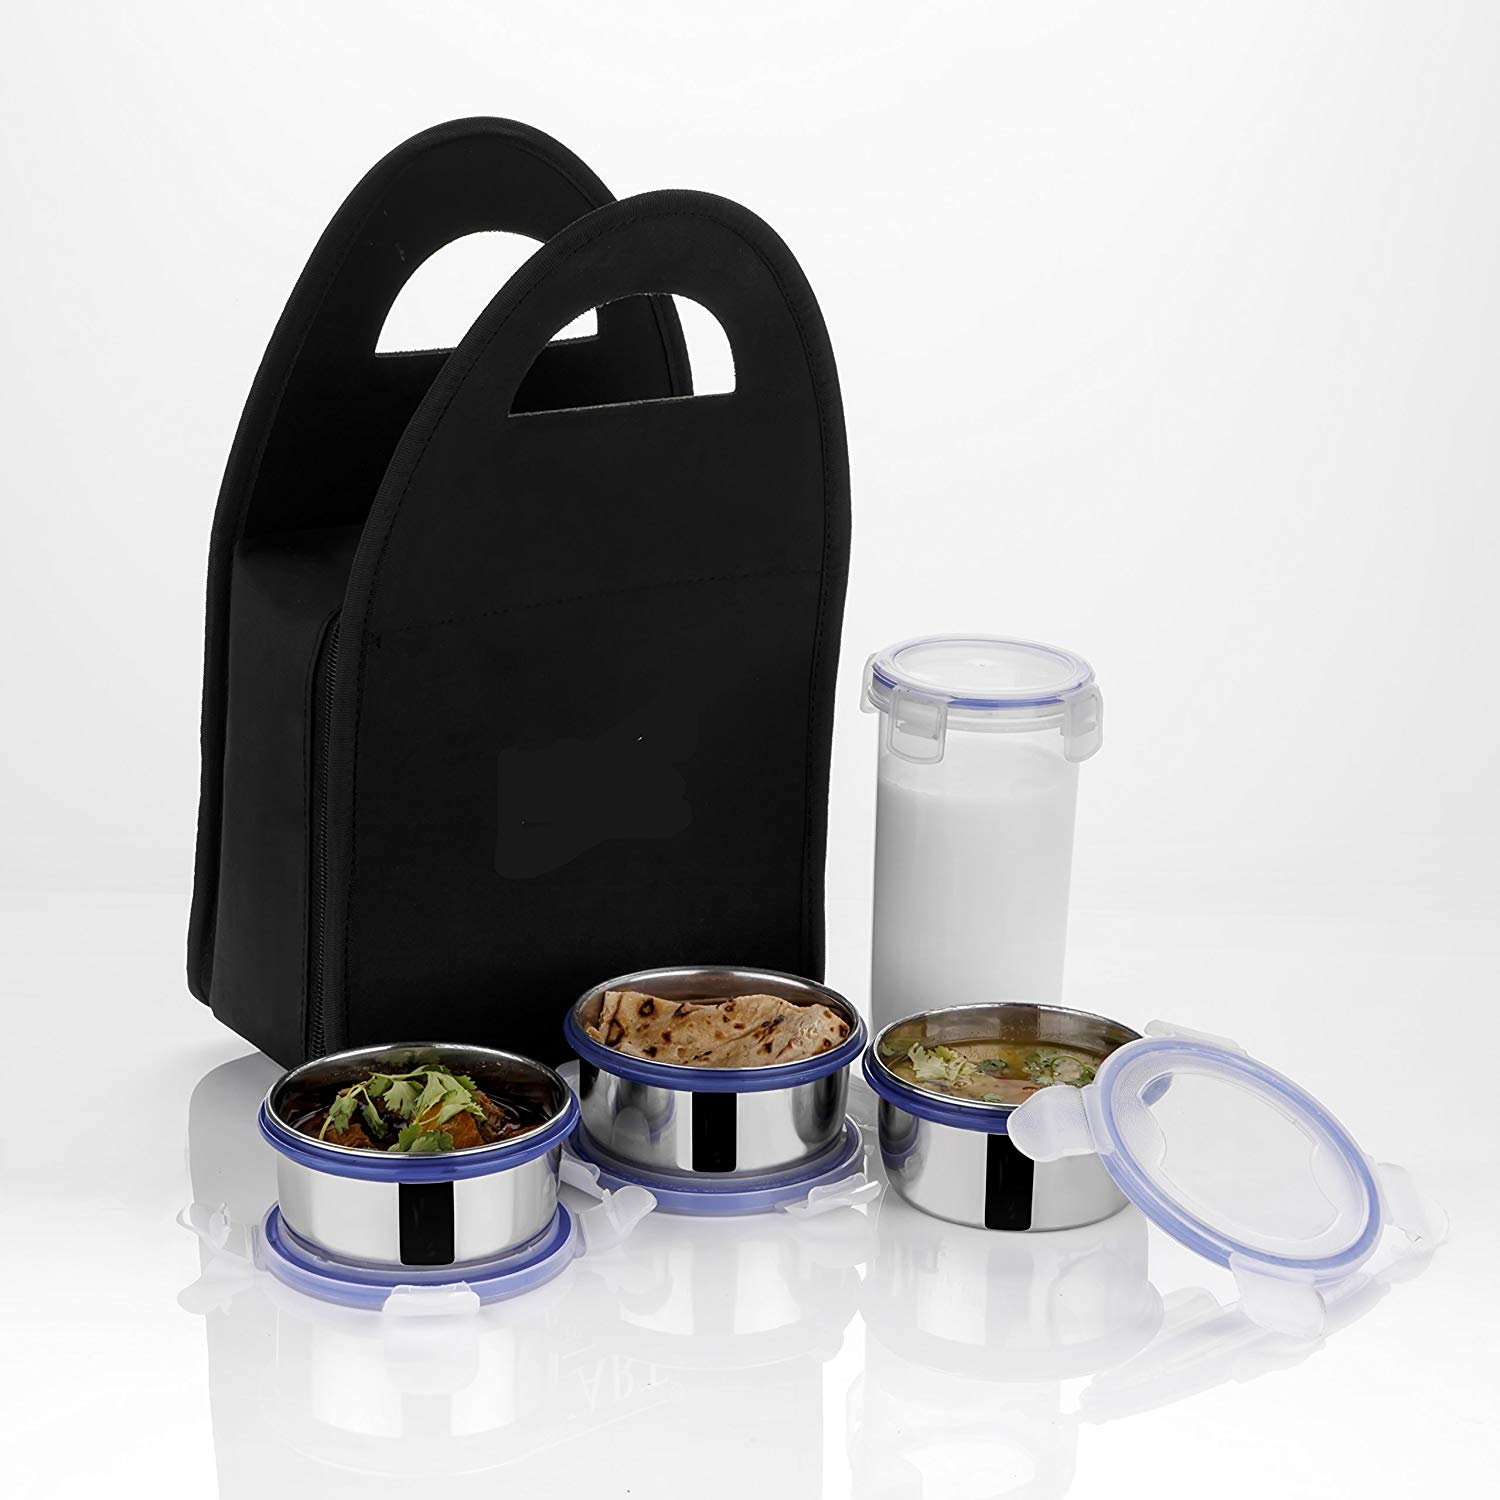 Analog kitchenware Multicolour Stainless Steel Lunch Box